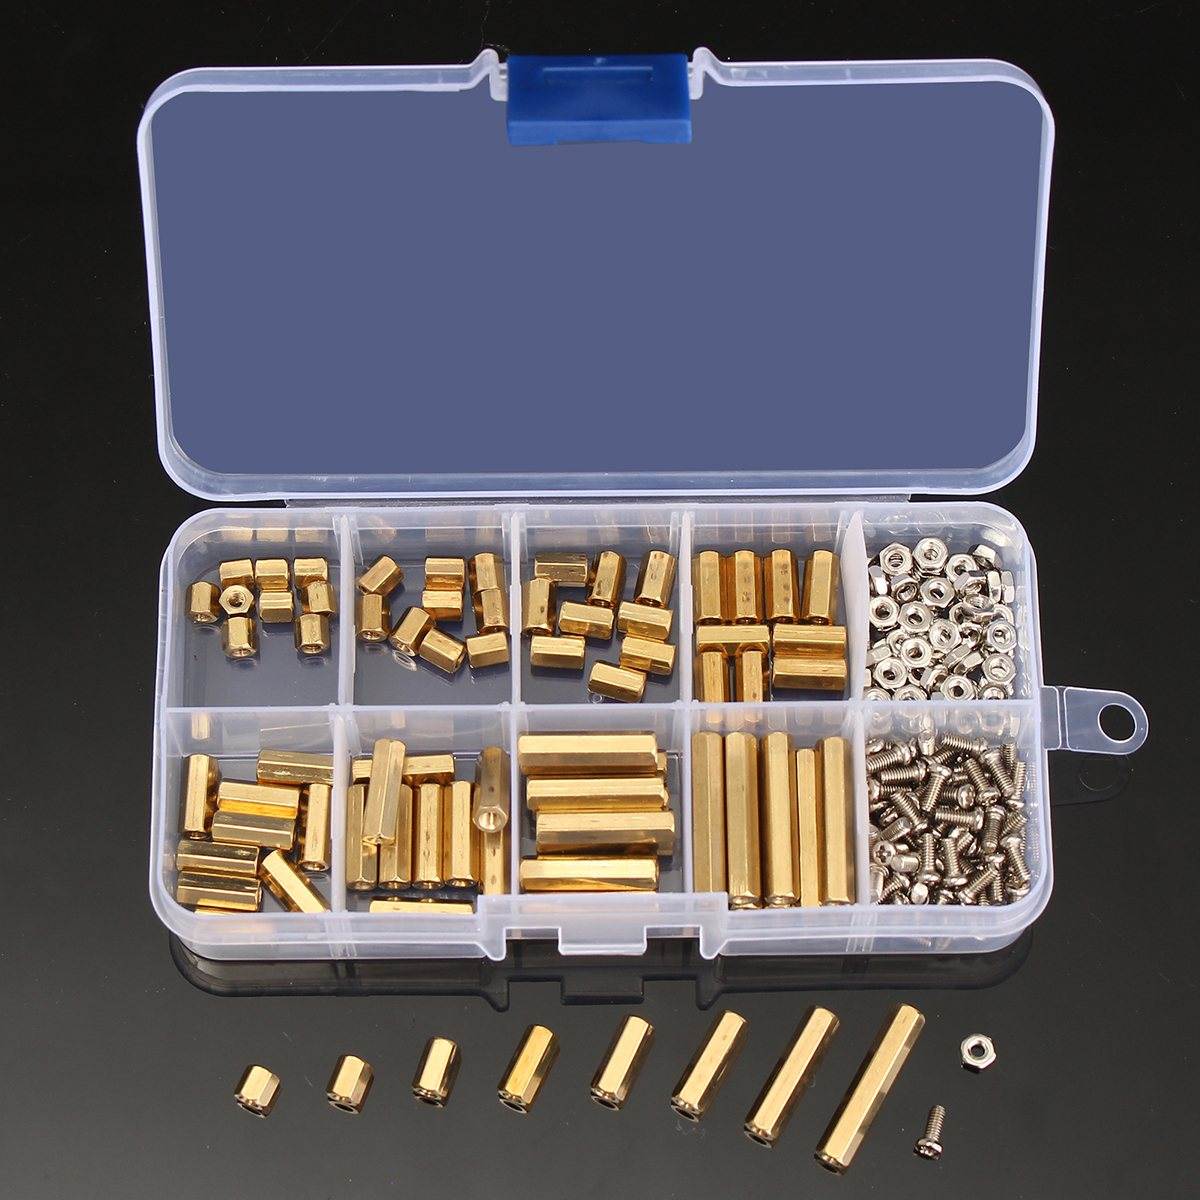 240pcs M2.5 2.5mm Brass Standoff Spacer Male x Female With M2.5 Pan Head Screws and m2.5 hex nut Assortment Kit Cap Screw m2 3 3 1pcs brass standoff 3mm spacer standard male female brass standoffs metric thread column high quality 1 piece sale